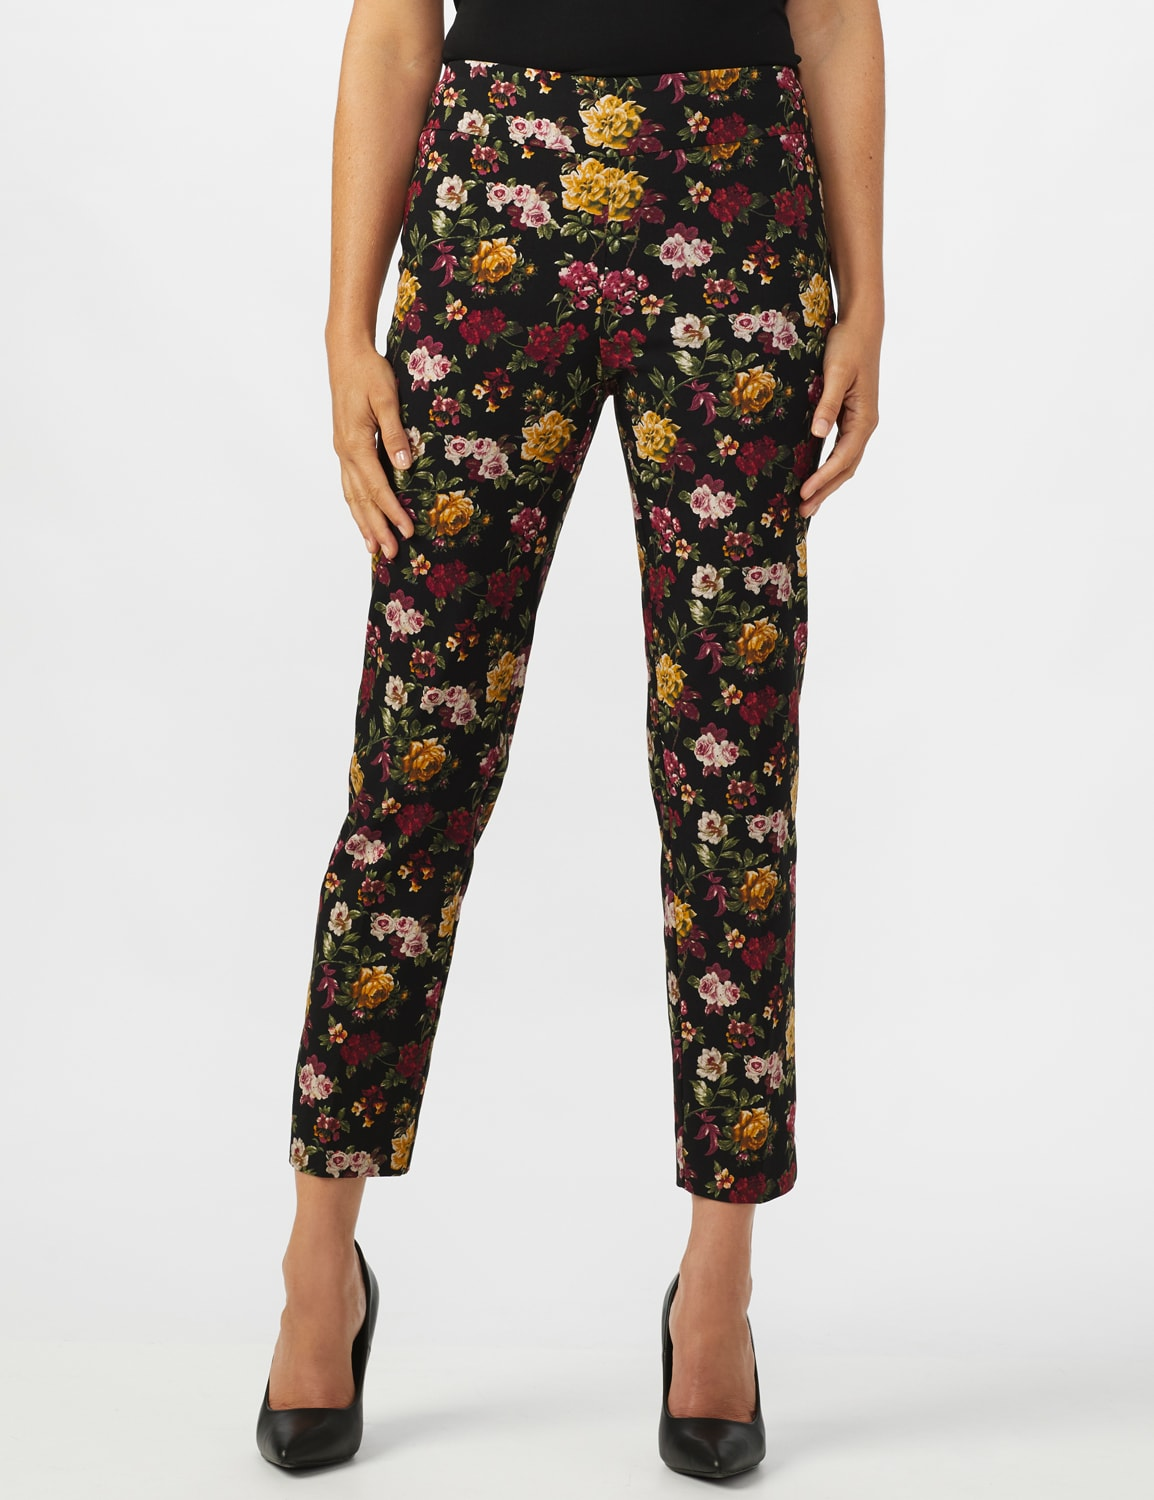 Pull On Floral print Ankle Pants - Black/Wine - Front